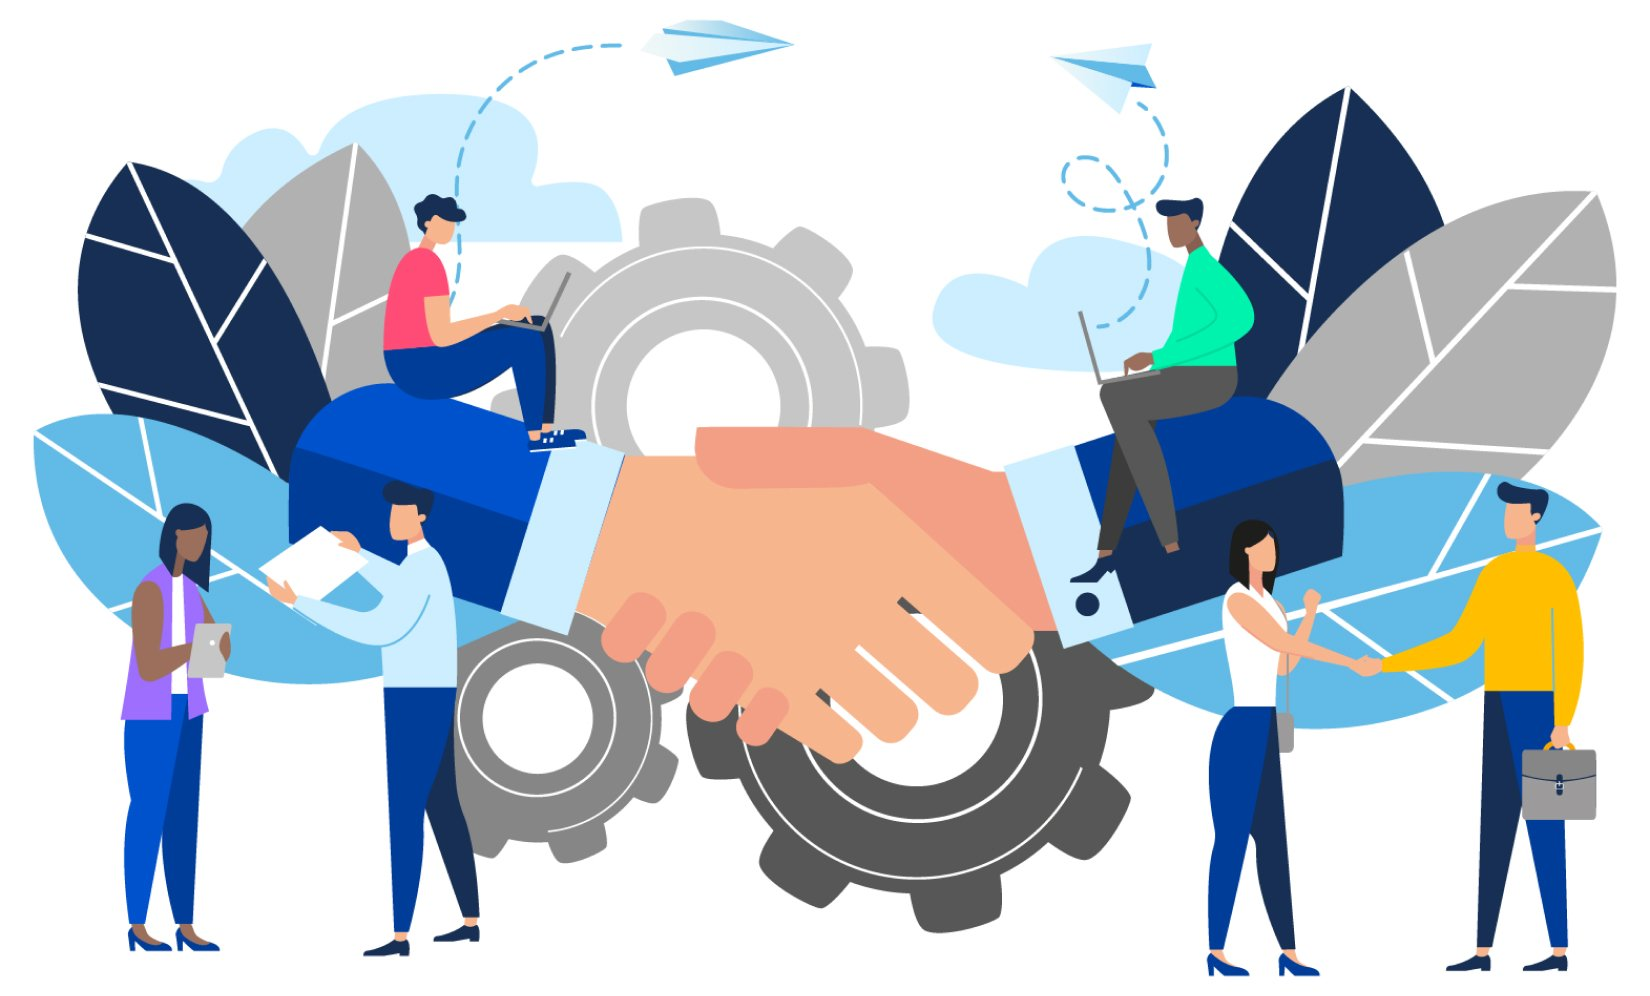 Illustration of law students and employers shaking hands signifying successful law student placements